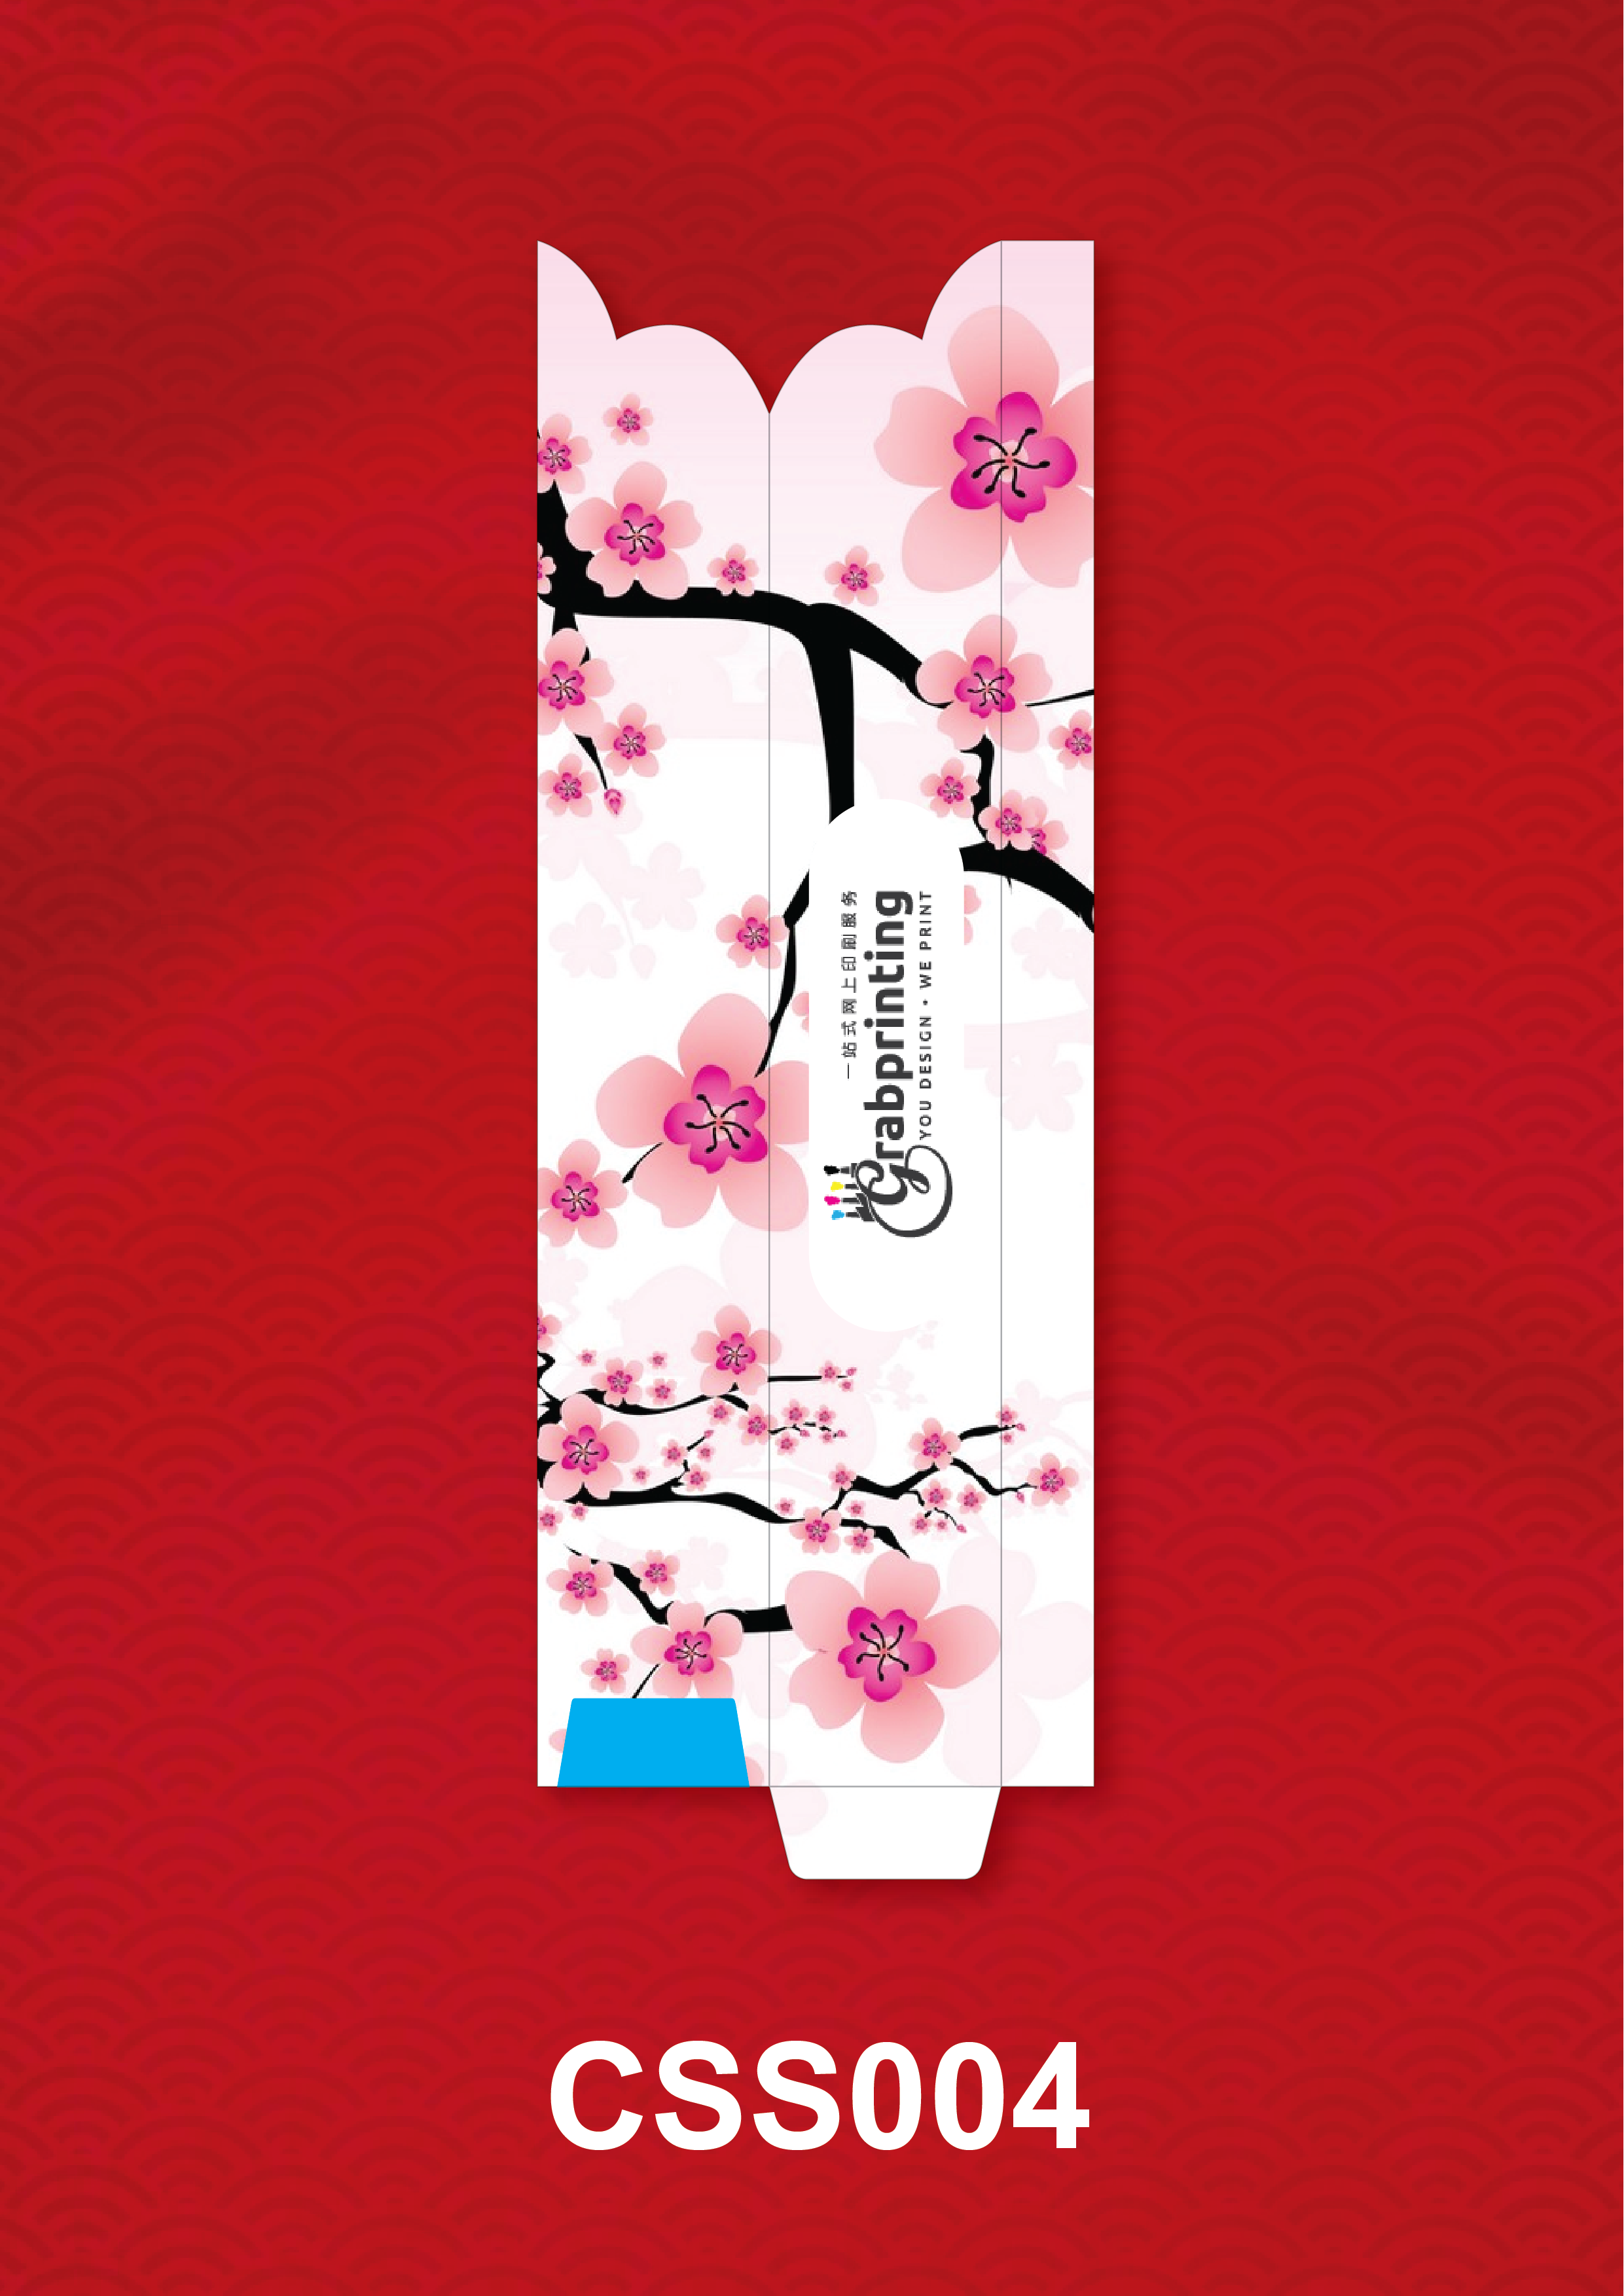 Chopsticks Sleeves css004